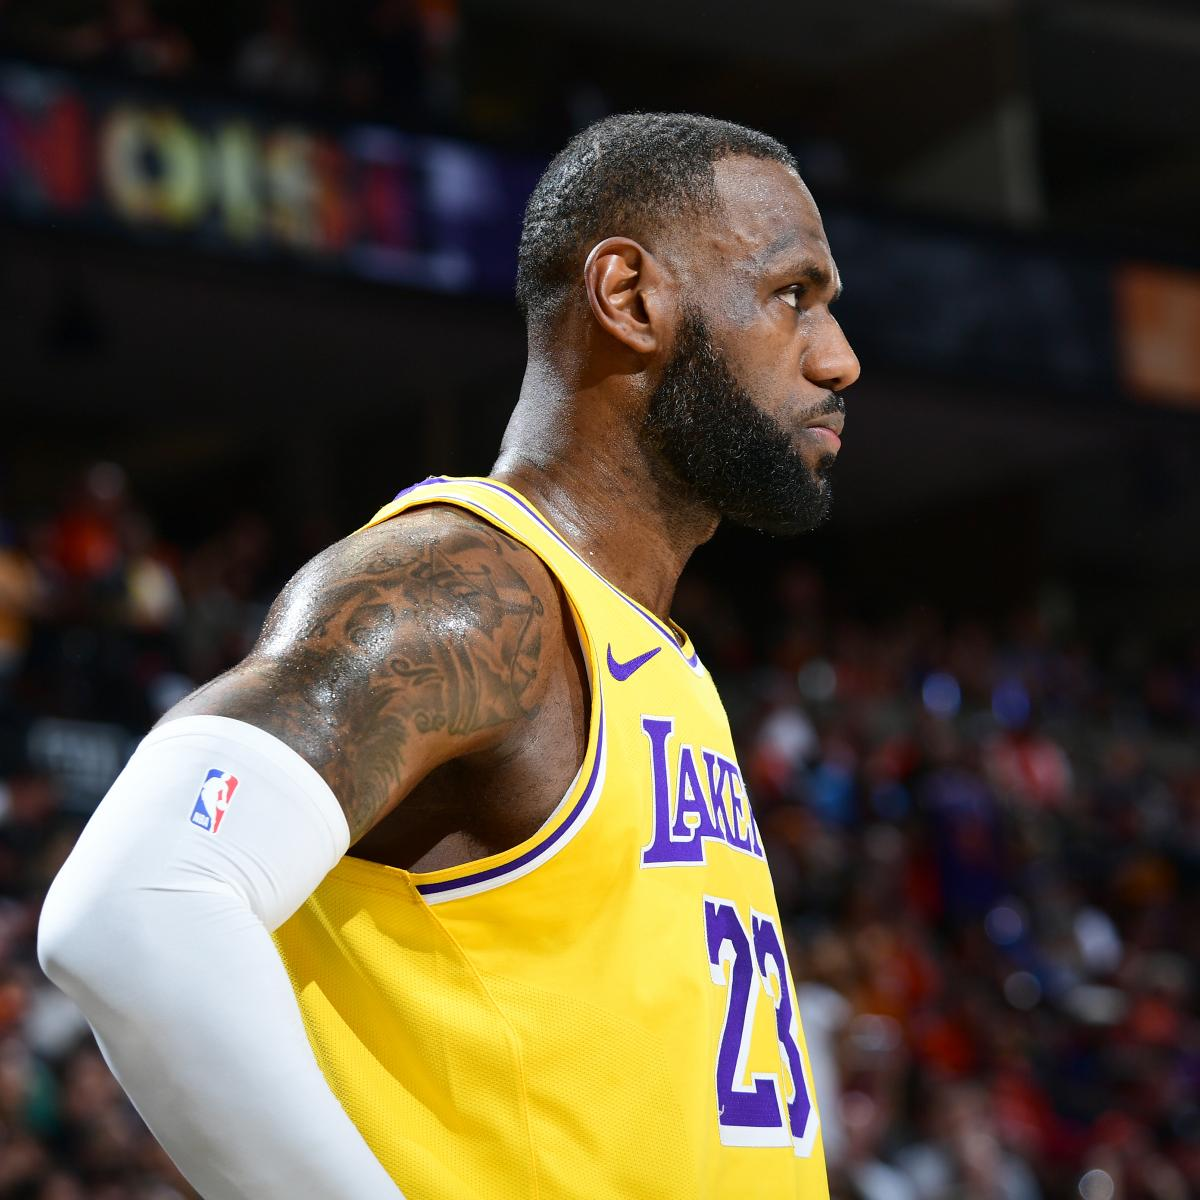 the-build-did-it-all-lope-execrable-for-the-defending-champion-los-angeles-lakers.jpg